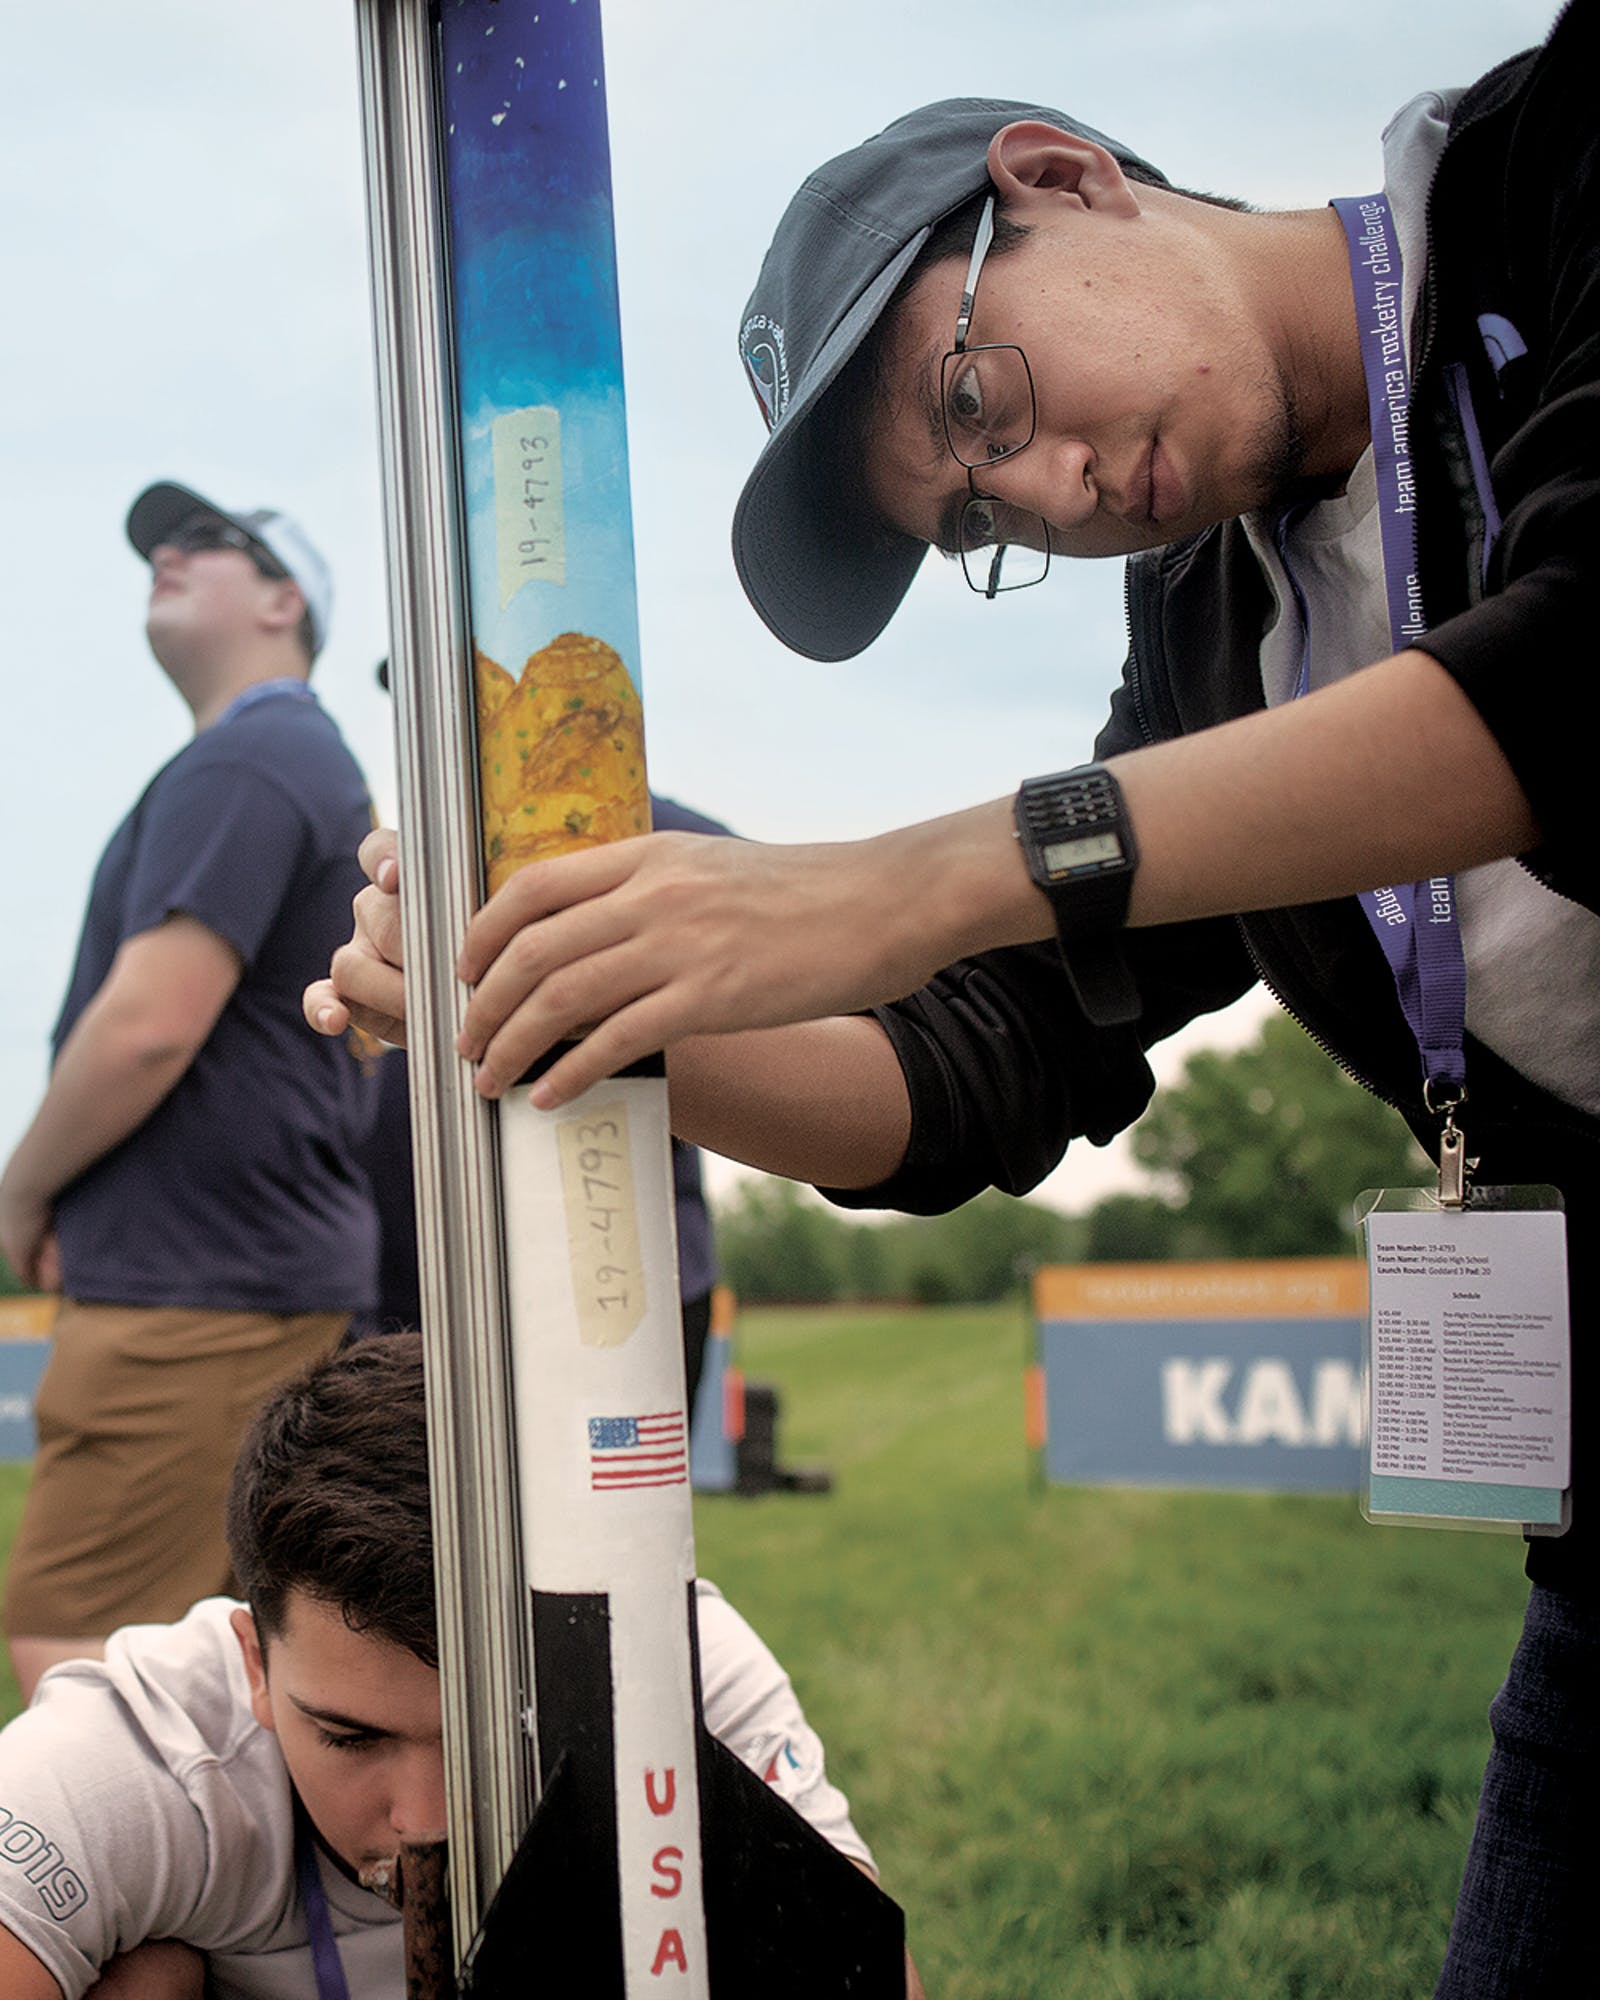 Aaron Bustamante and Uribe make adjustments to their rocket, Agripino, at the 2019 Team America Rocketry Challenge national finals in The Plains, Virginia, on May 18, 2019.